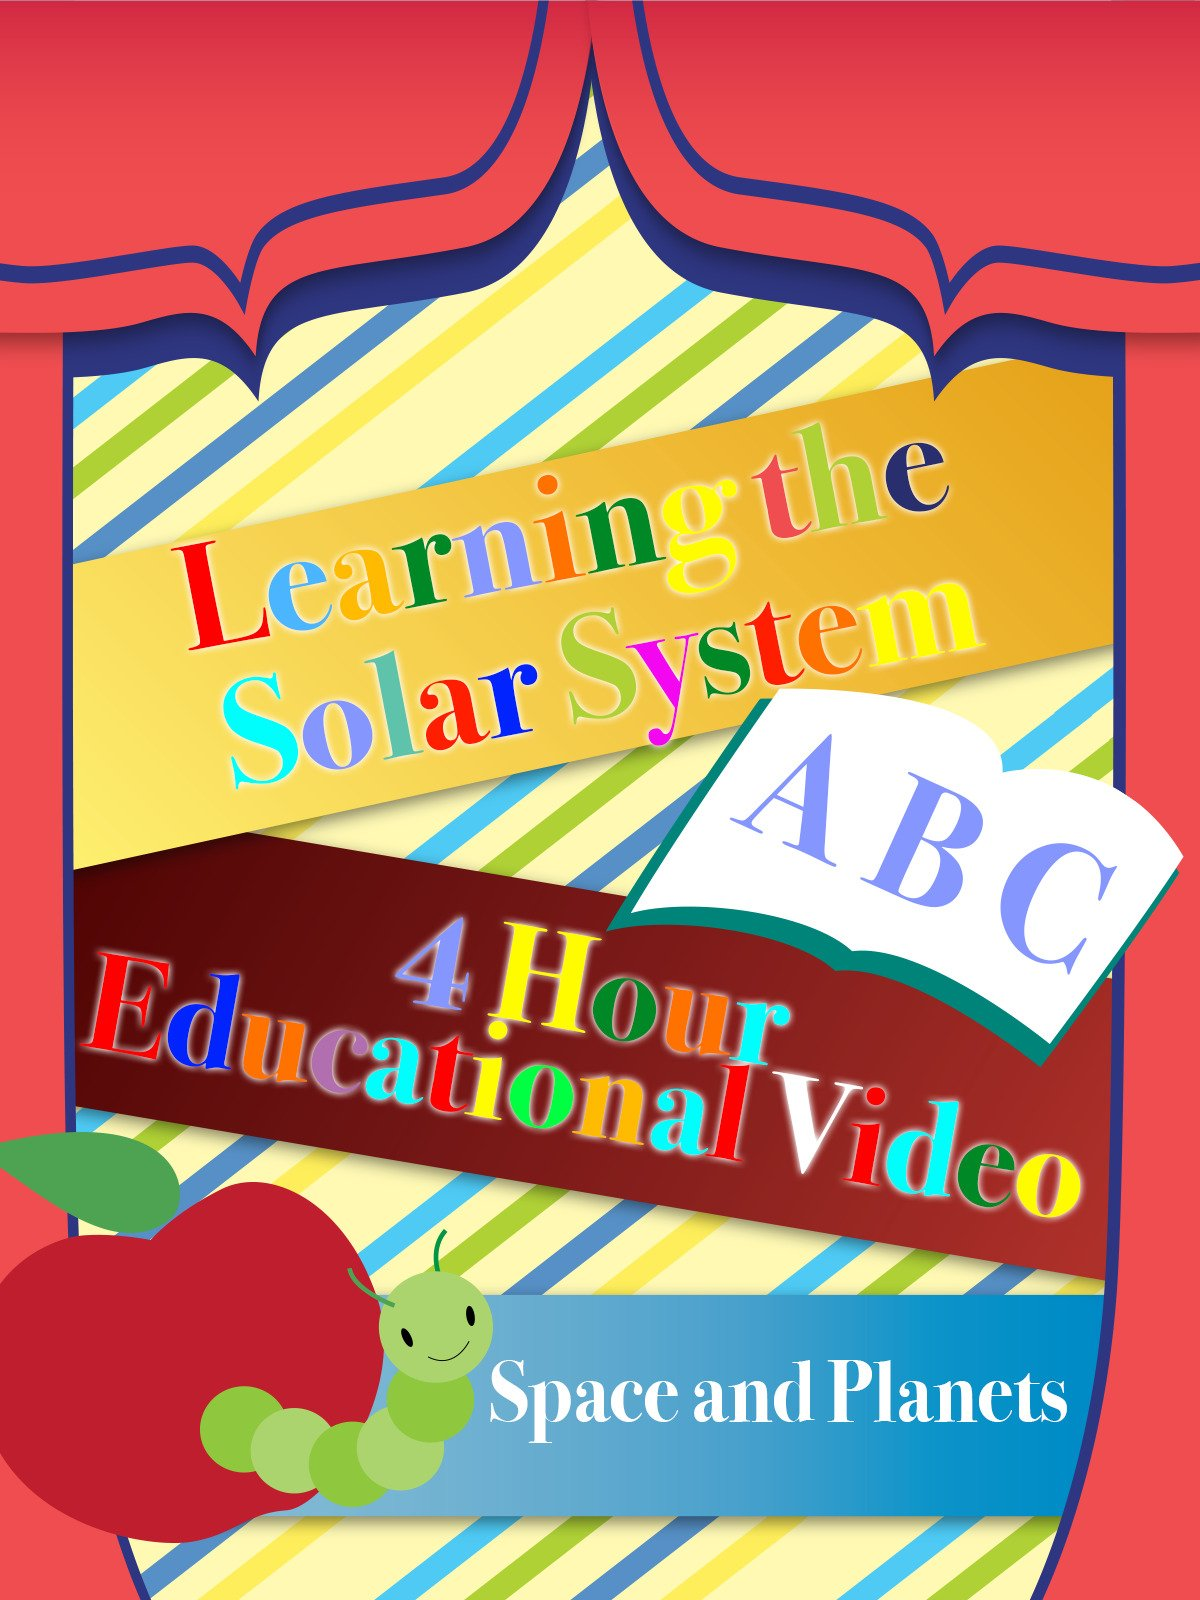 Learning the Solar System 4 Hour Educational Video Space and Planets